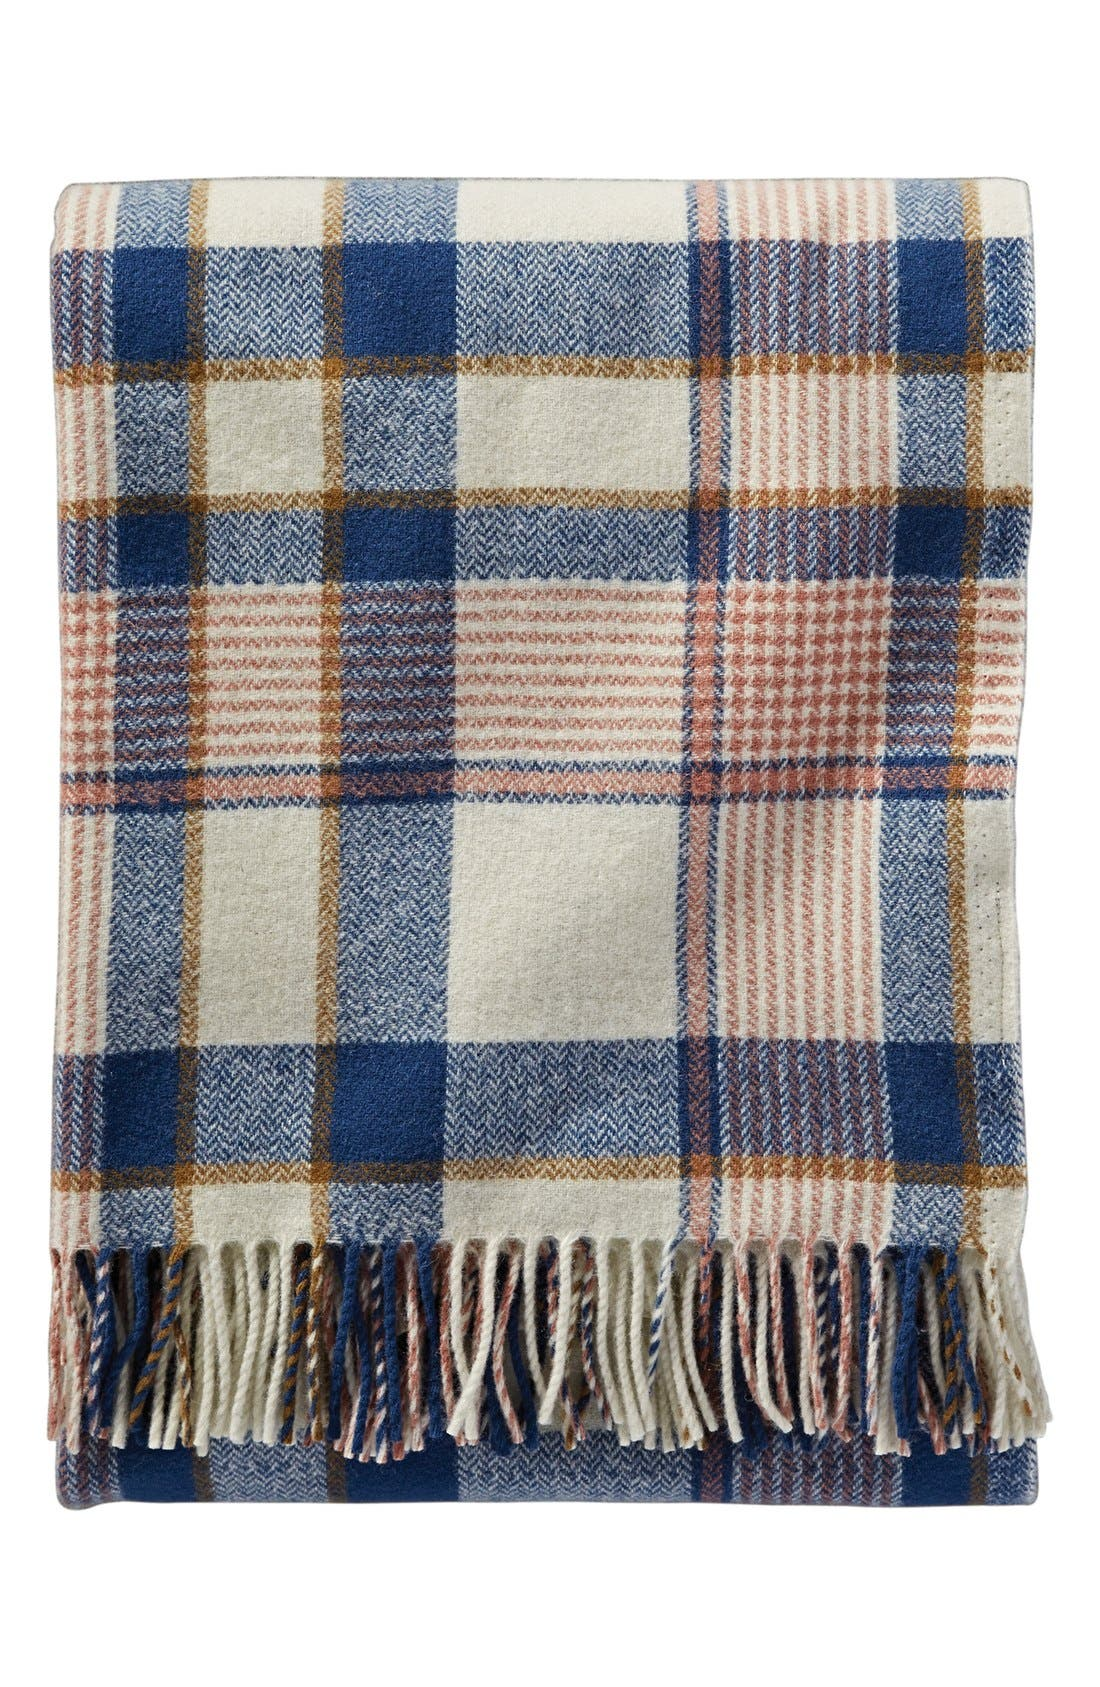 Alternate Image 1 Selected - Pendleton 'Hampshire Plaid' Throw Blanket & Carrier